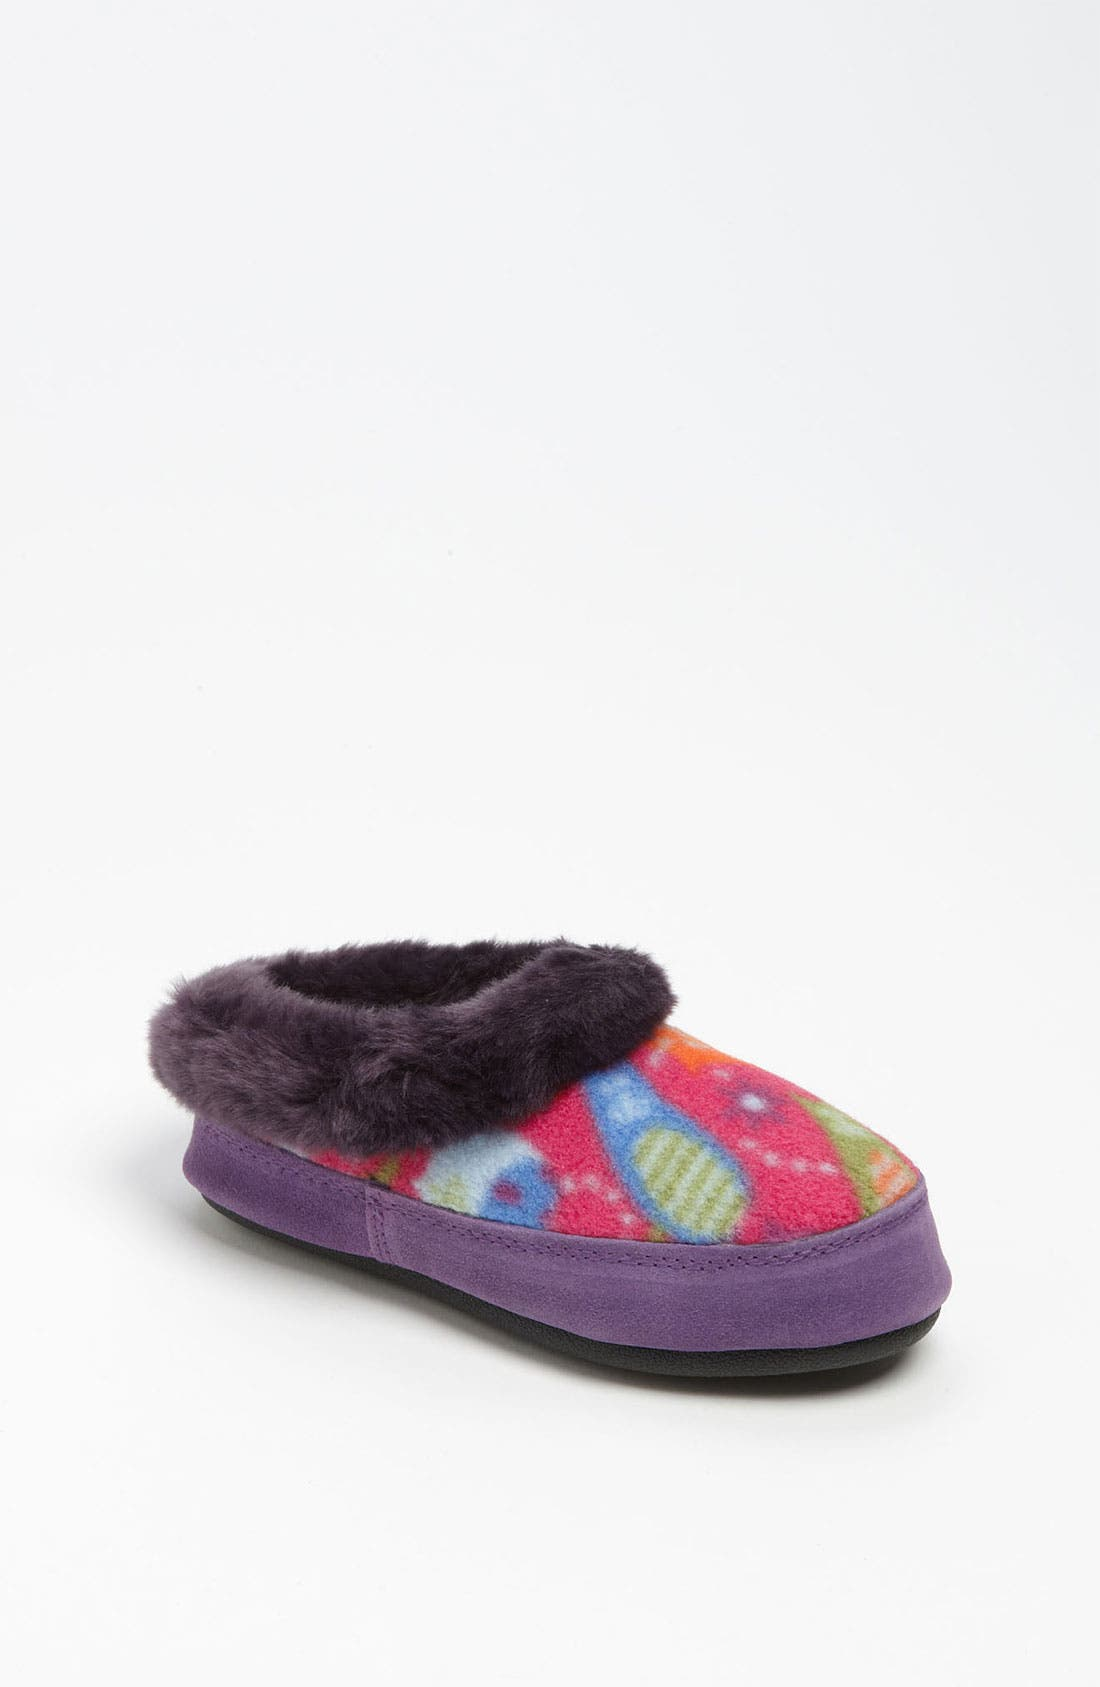 Alternate Image 1 Selected - Acorn 'Hopscotch' Slipper (Toddler, Little Kid & Big Kid)